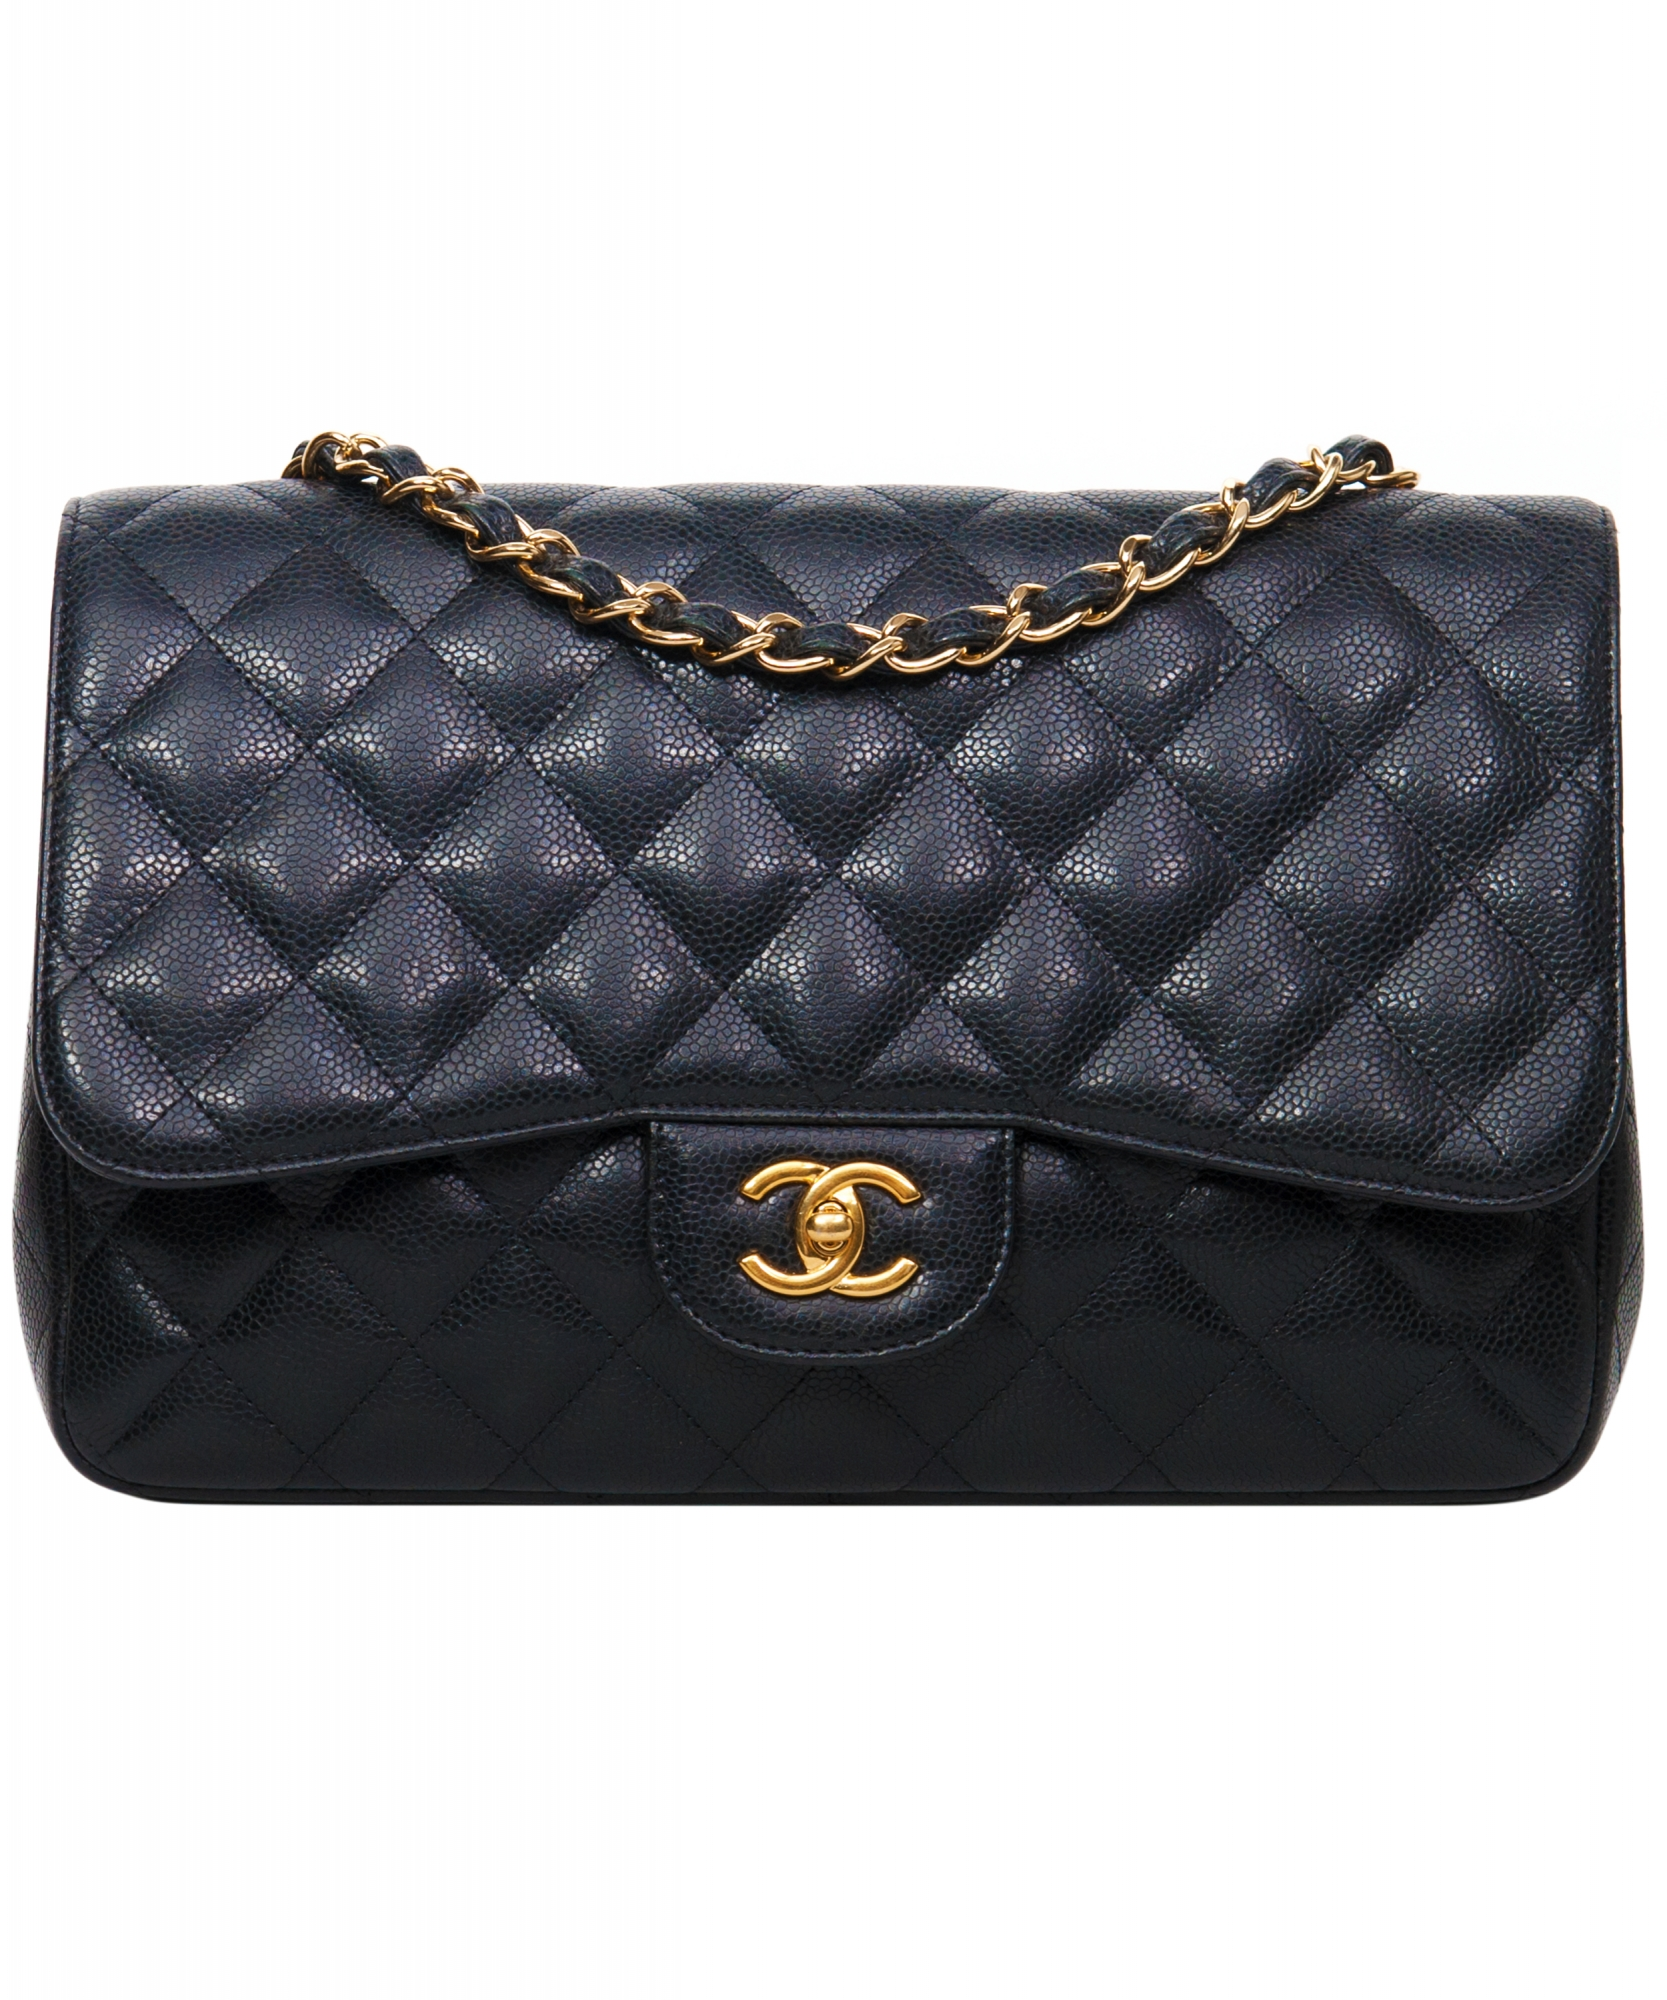 f51a92488ecb Chanel Classic Caviar Large Shoulder Bag | La Doyenne